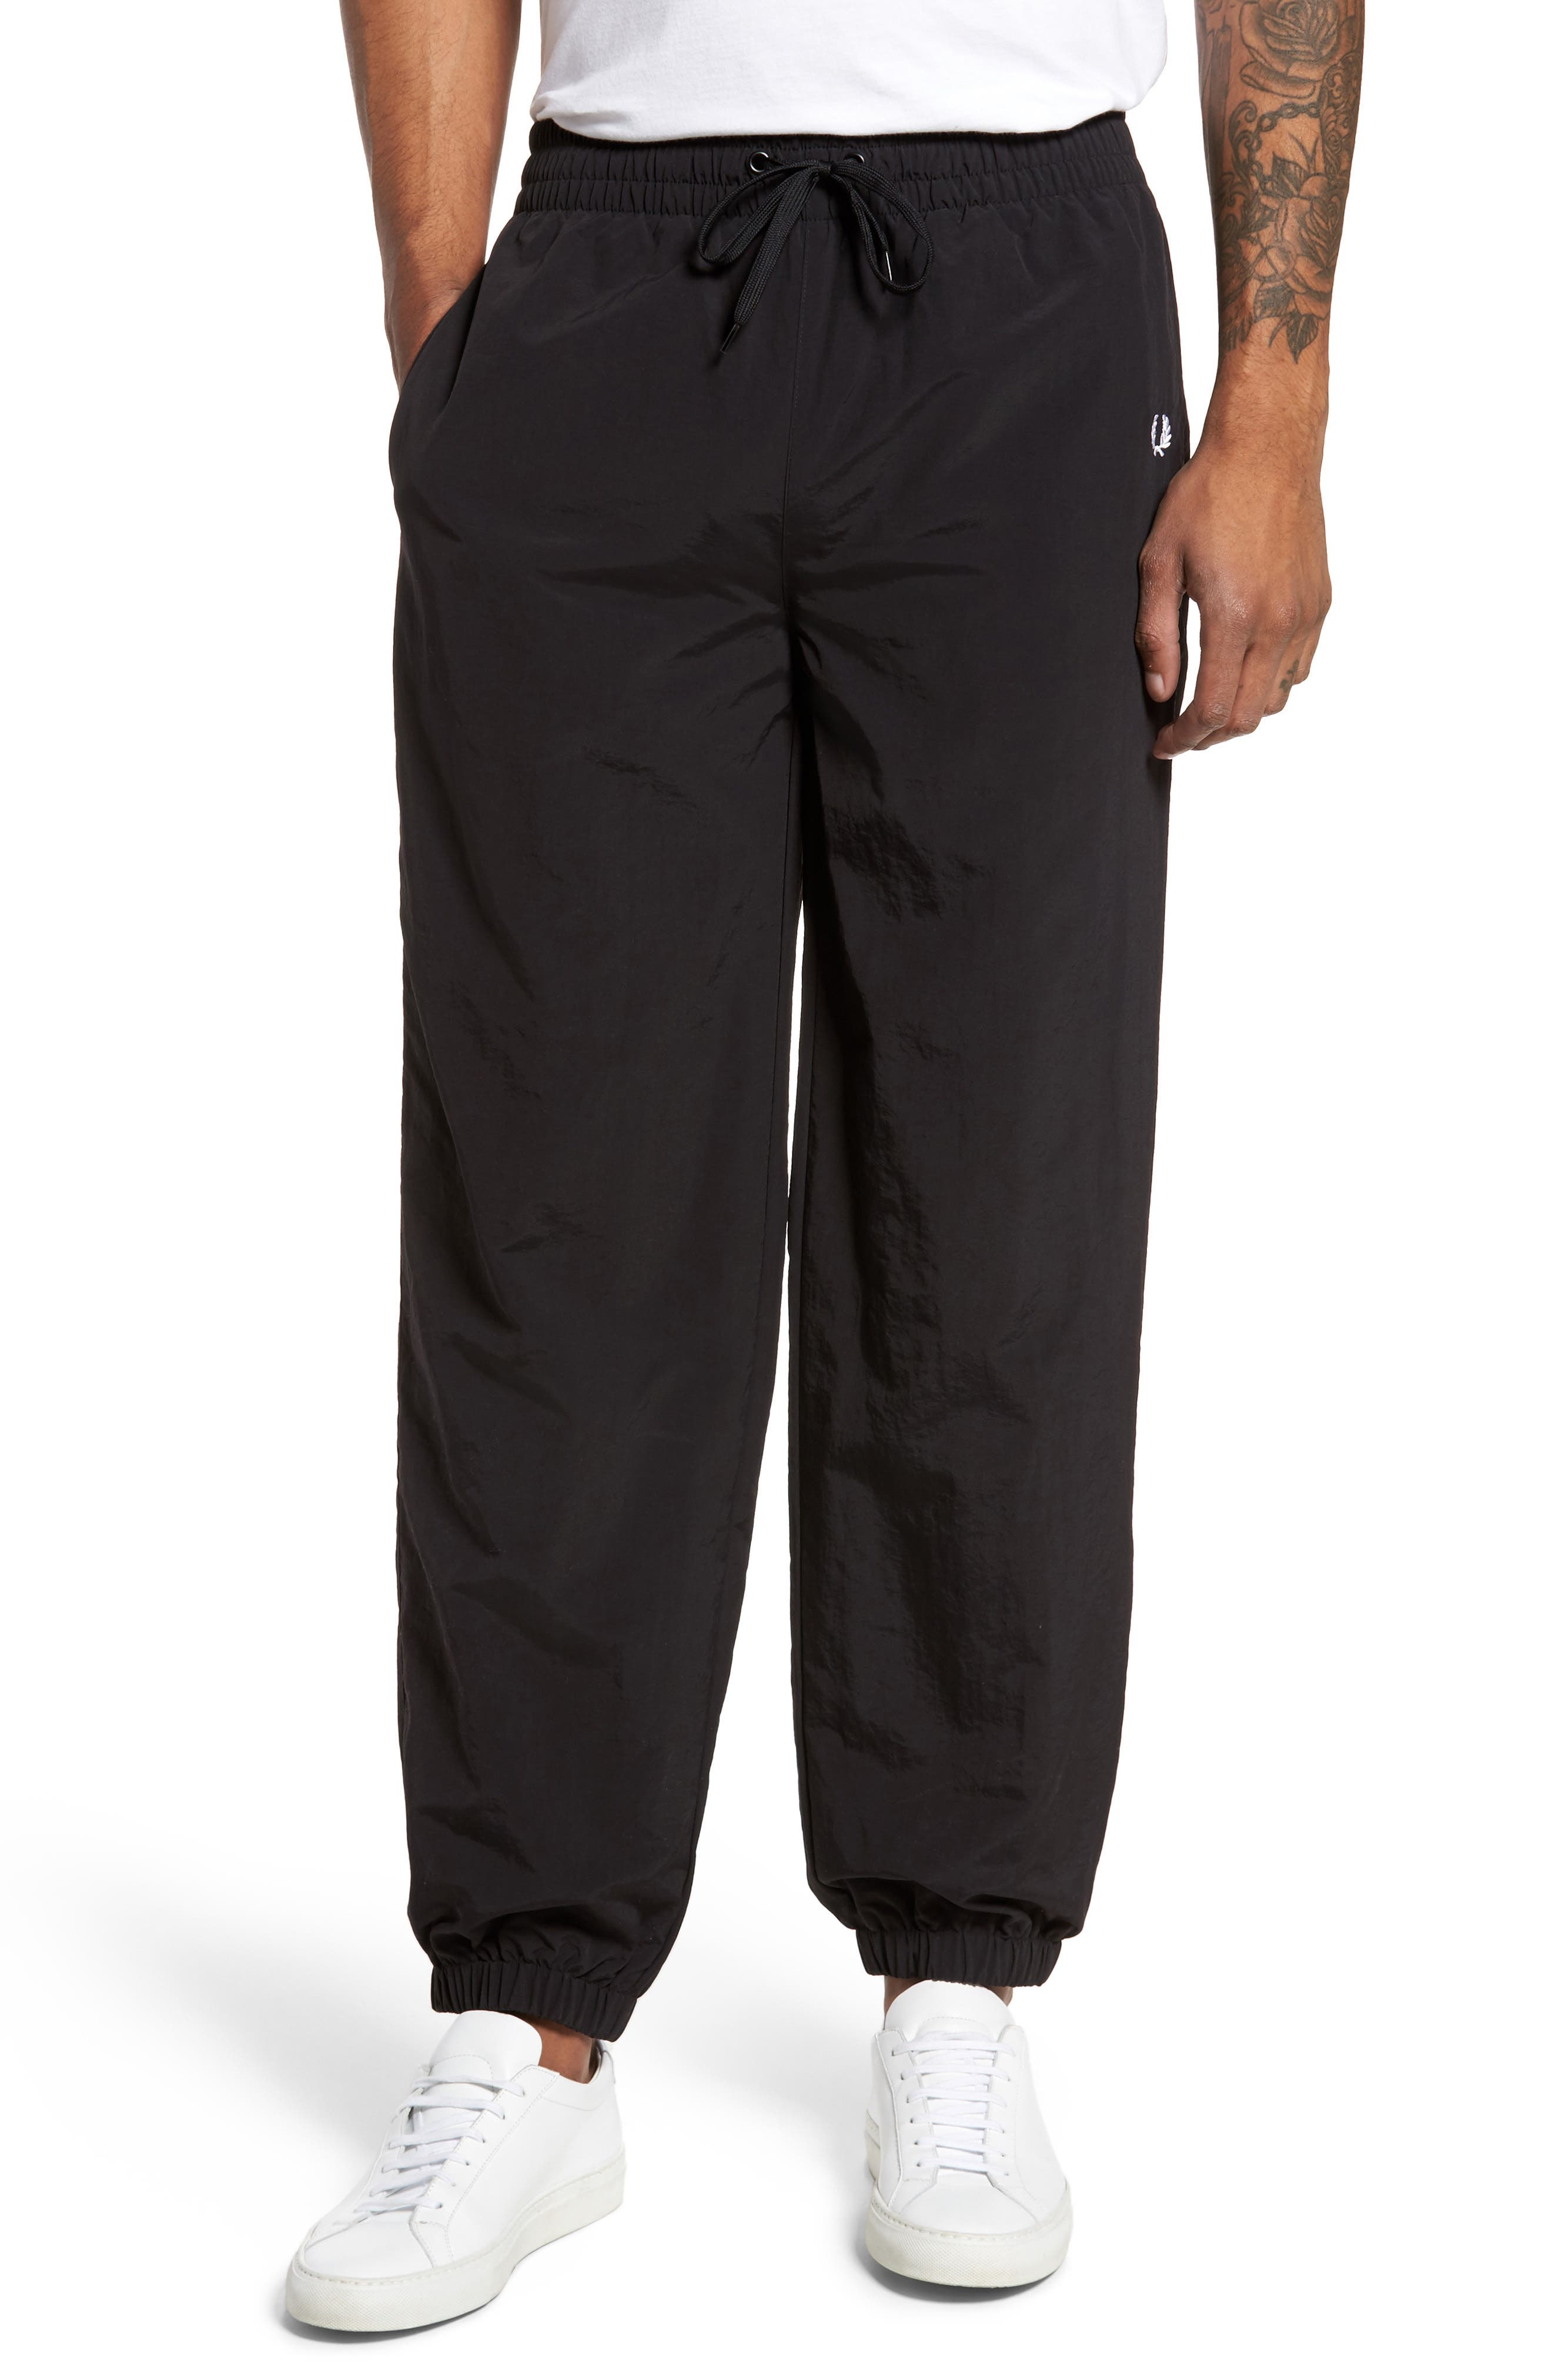 Main Image - Fred Perry Monochrome Tennis Pants